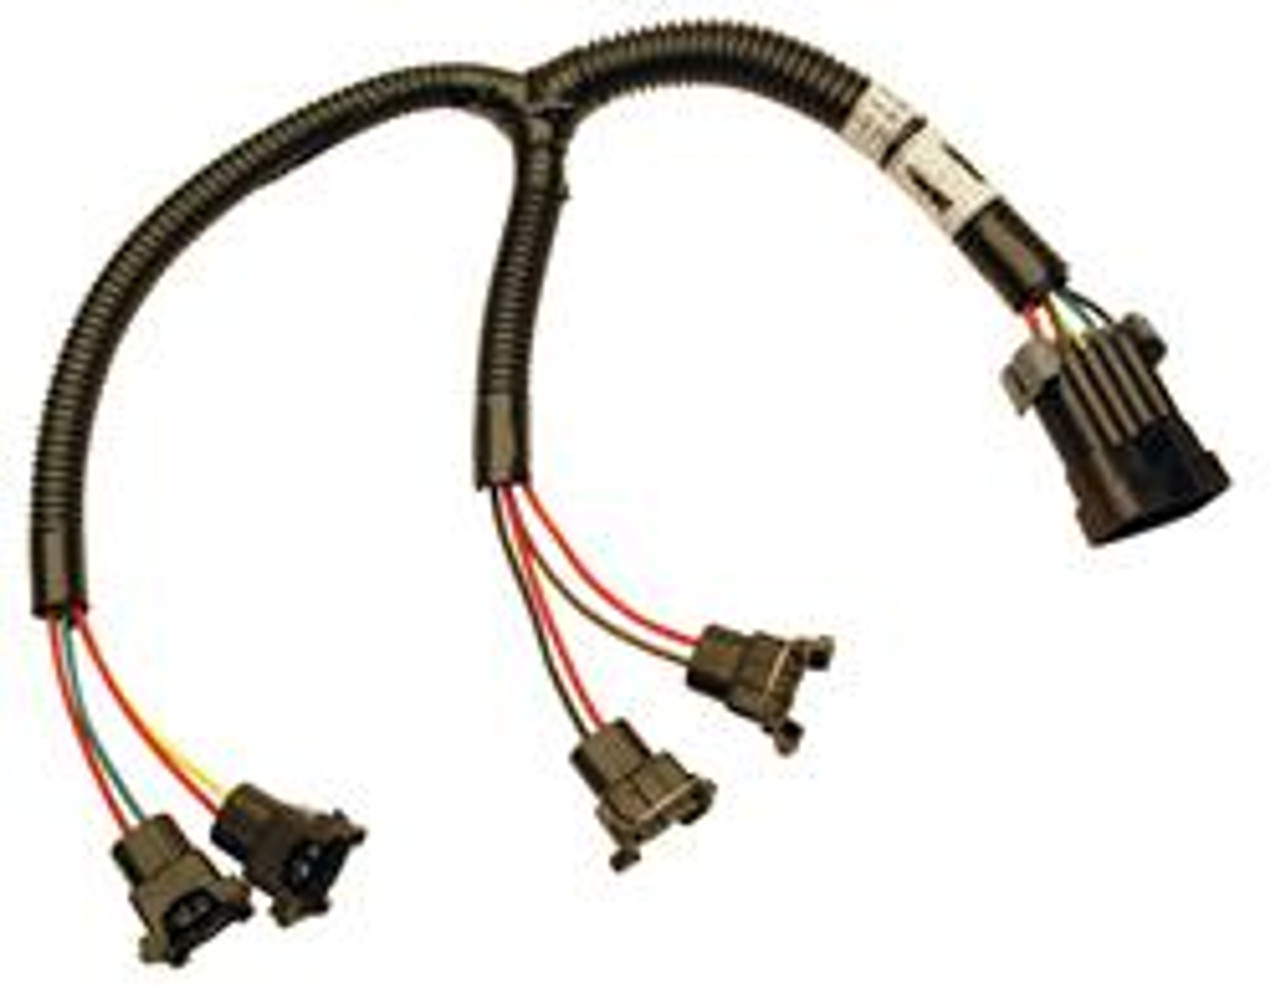 FAST XFI Fuel Injector Harness for SBC & LT1 301200 Fast Fuel Injection Wiring Harness on